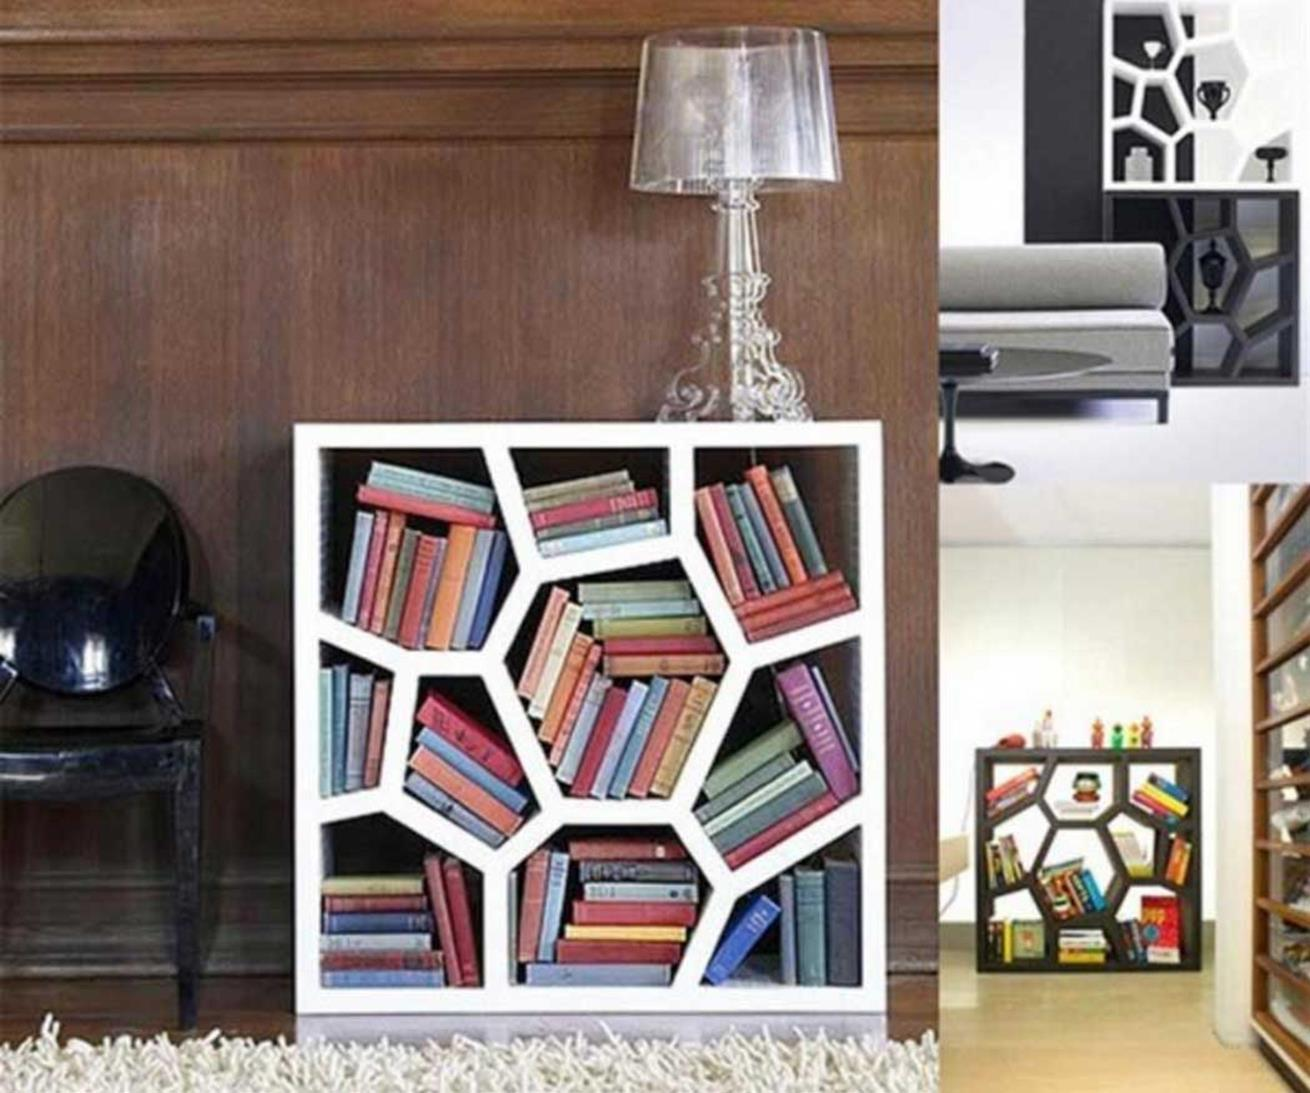 Perfect Bookshelves For Small Spaces and Decor Ideas 18